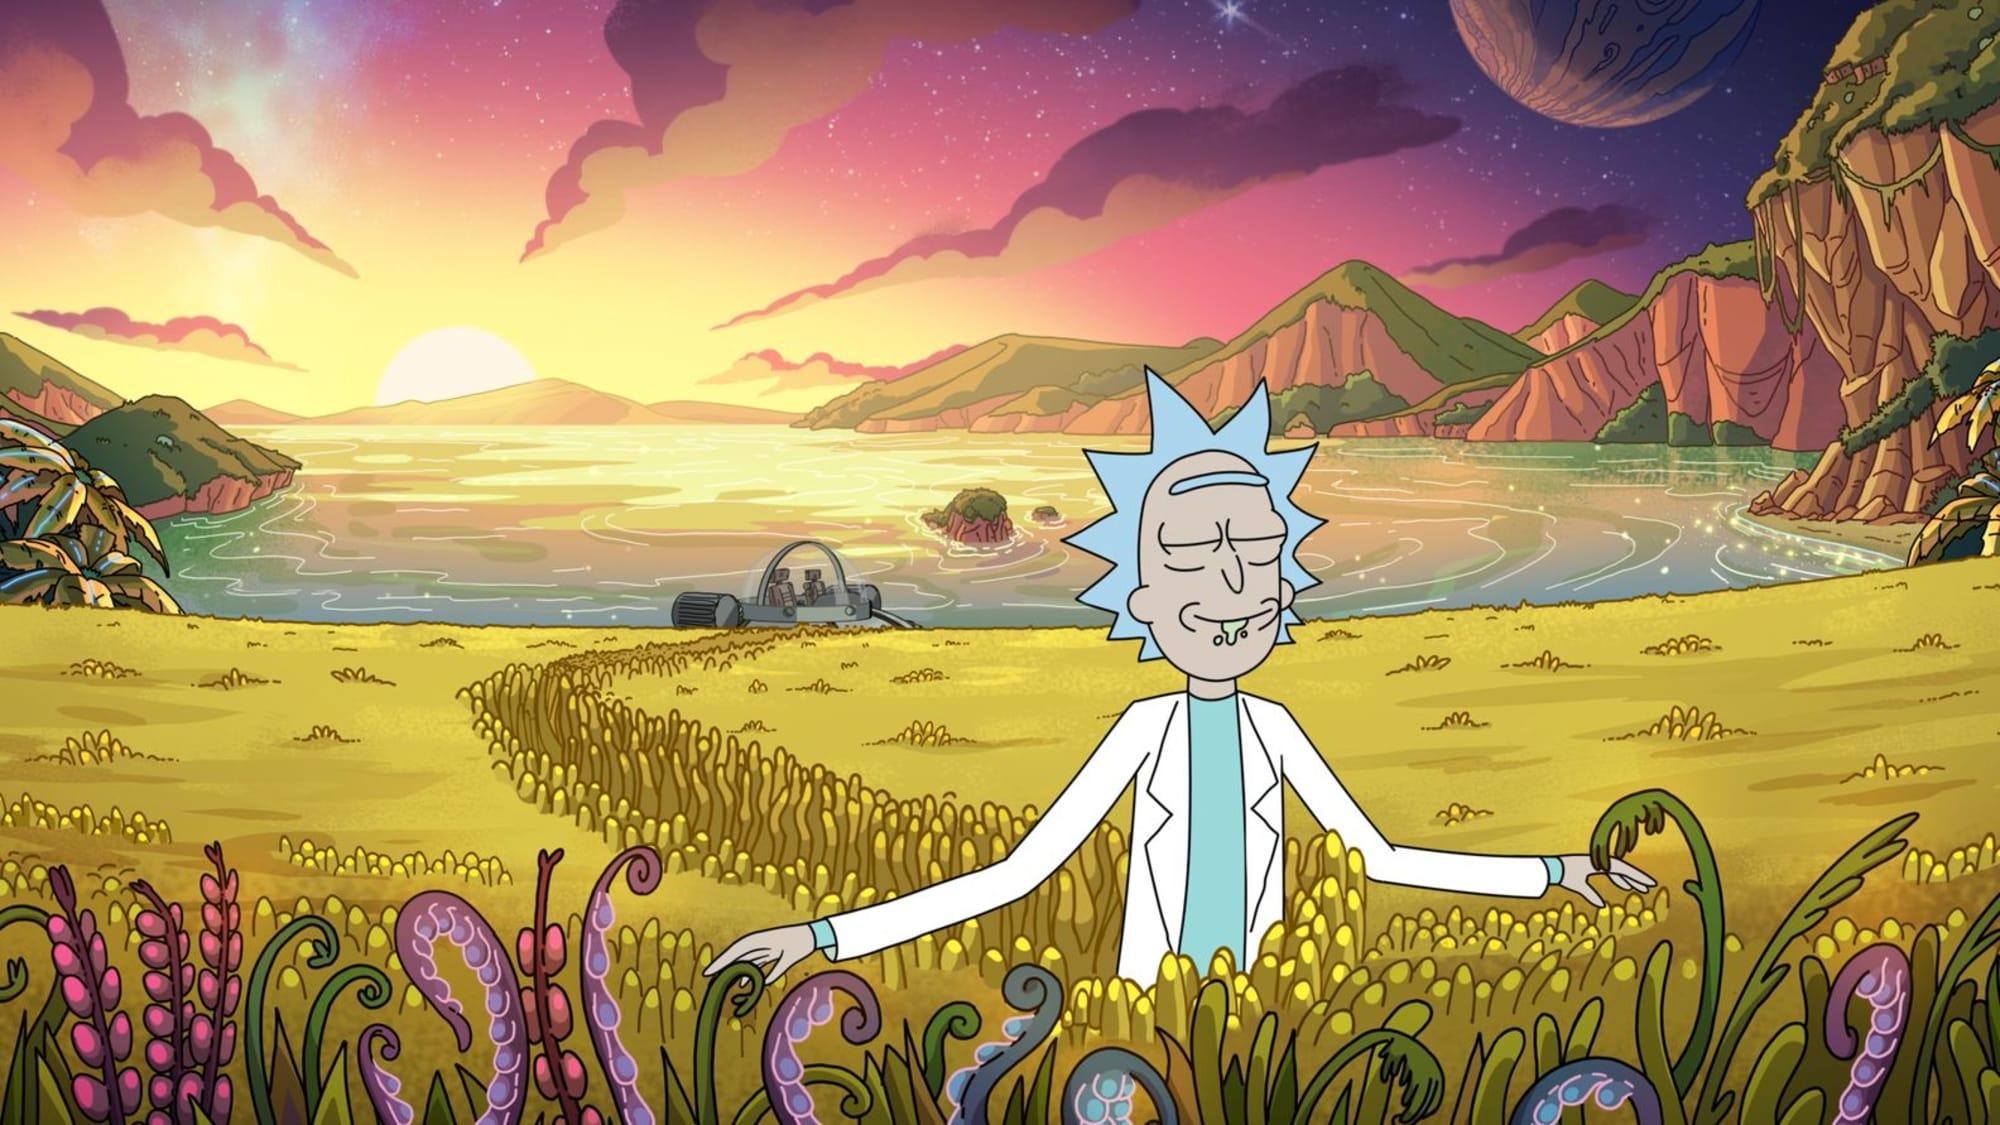 Rick And Morty Season 5 Release Date Cast Trailer Synopsis And More